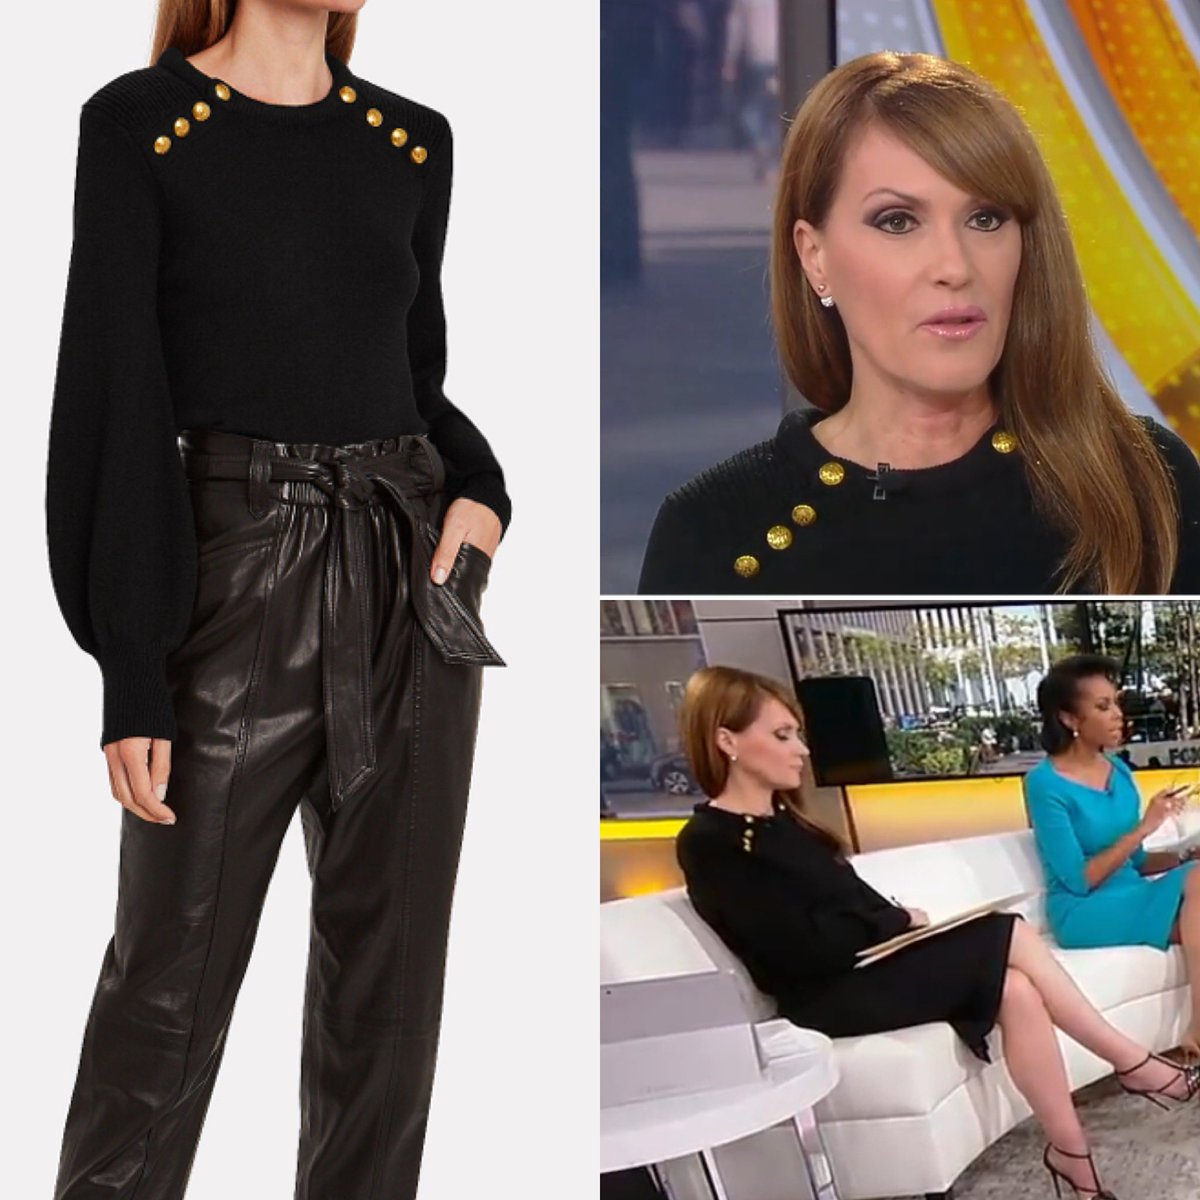 Dagen McDowell (@dagenmcdowell) appears to have appears to have worn an ALC 'Kayla' Black Button Embellished Wool Sweater today on #Outnumbered - the sweater is available via Intermix.  #foxnews #foxnewsfashion #foxbusiness https://www.instagram.com/p/B3-x-mxA3G2/?igshid=x9exfh1ykwp9 …pic.twitter.com/8YBo5Si19Z